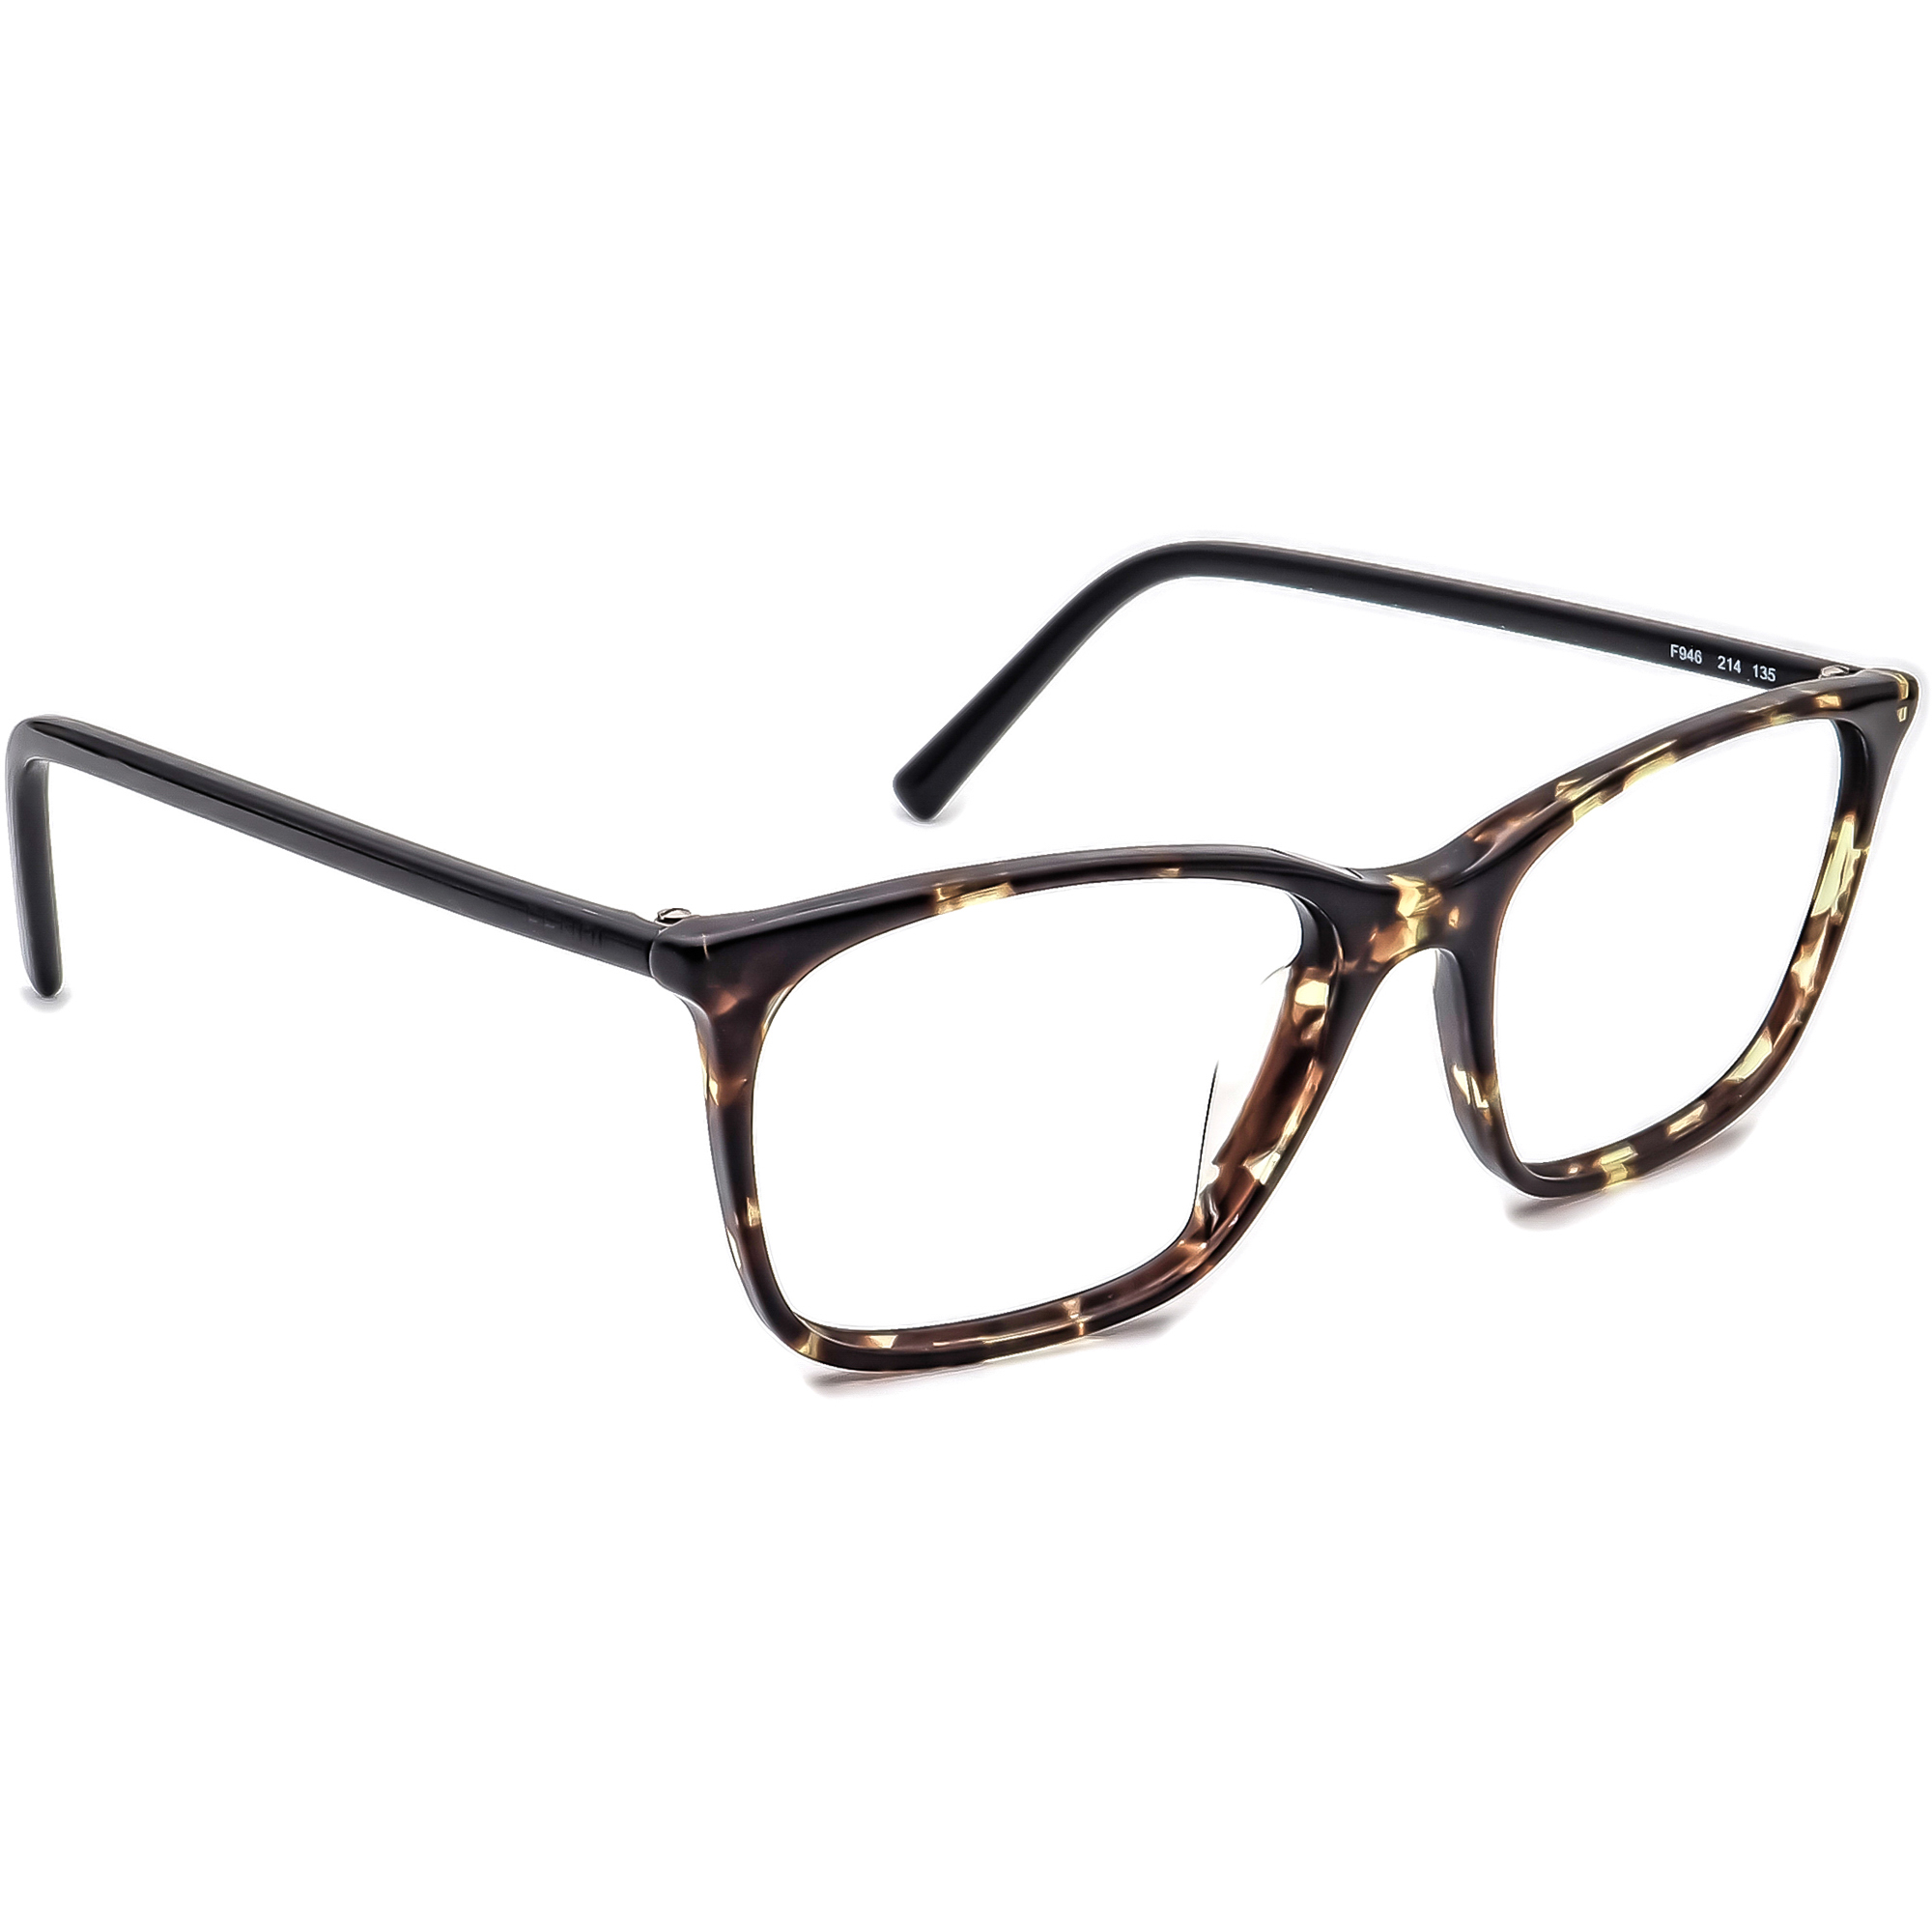 Fendi F946 214 Eyeglasses